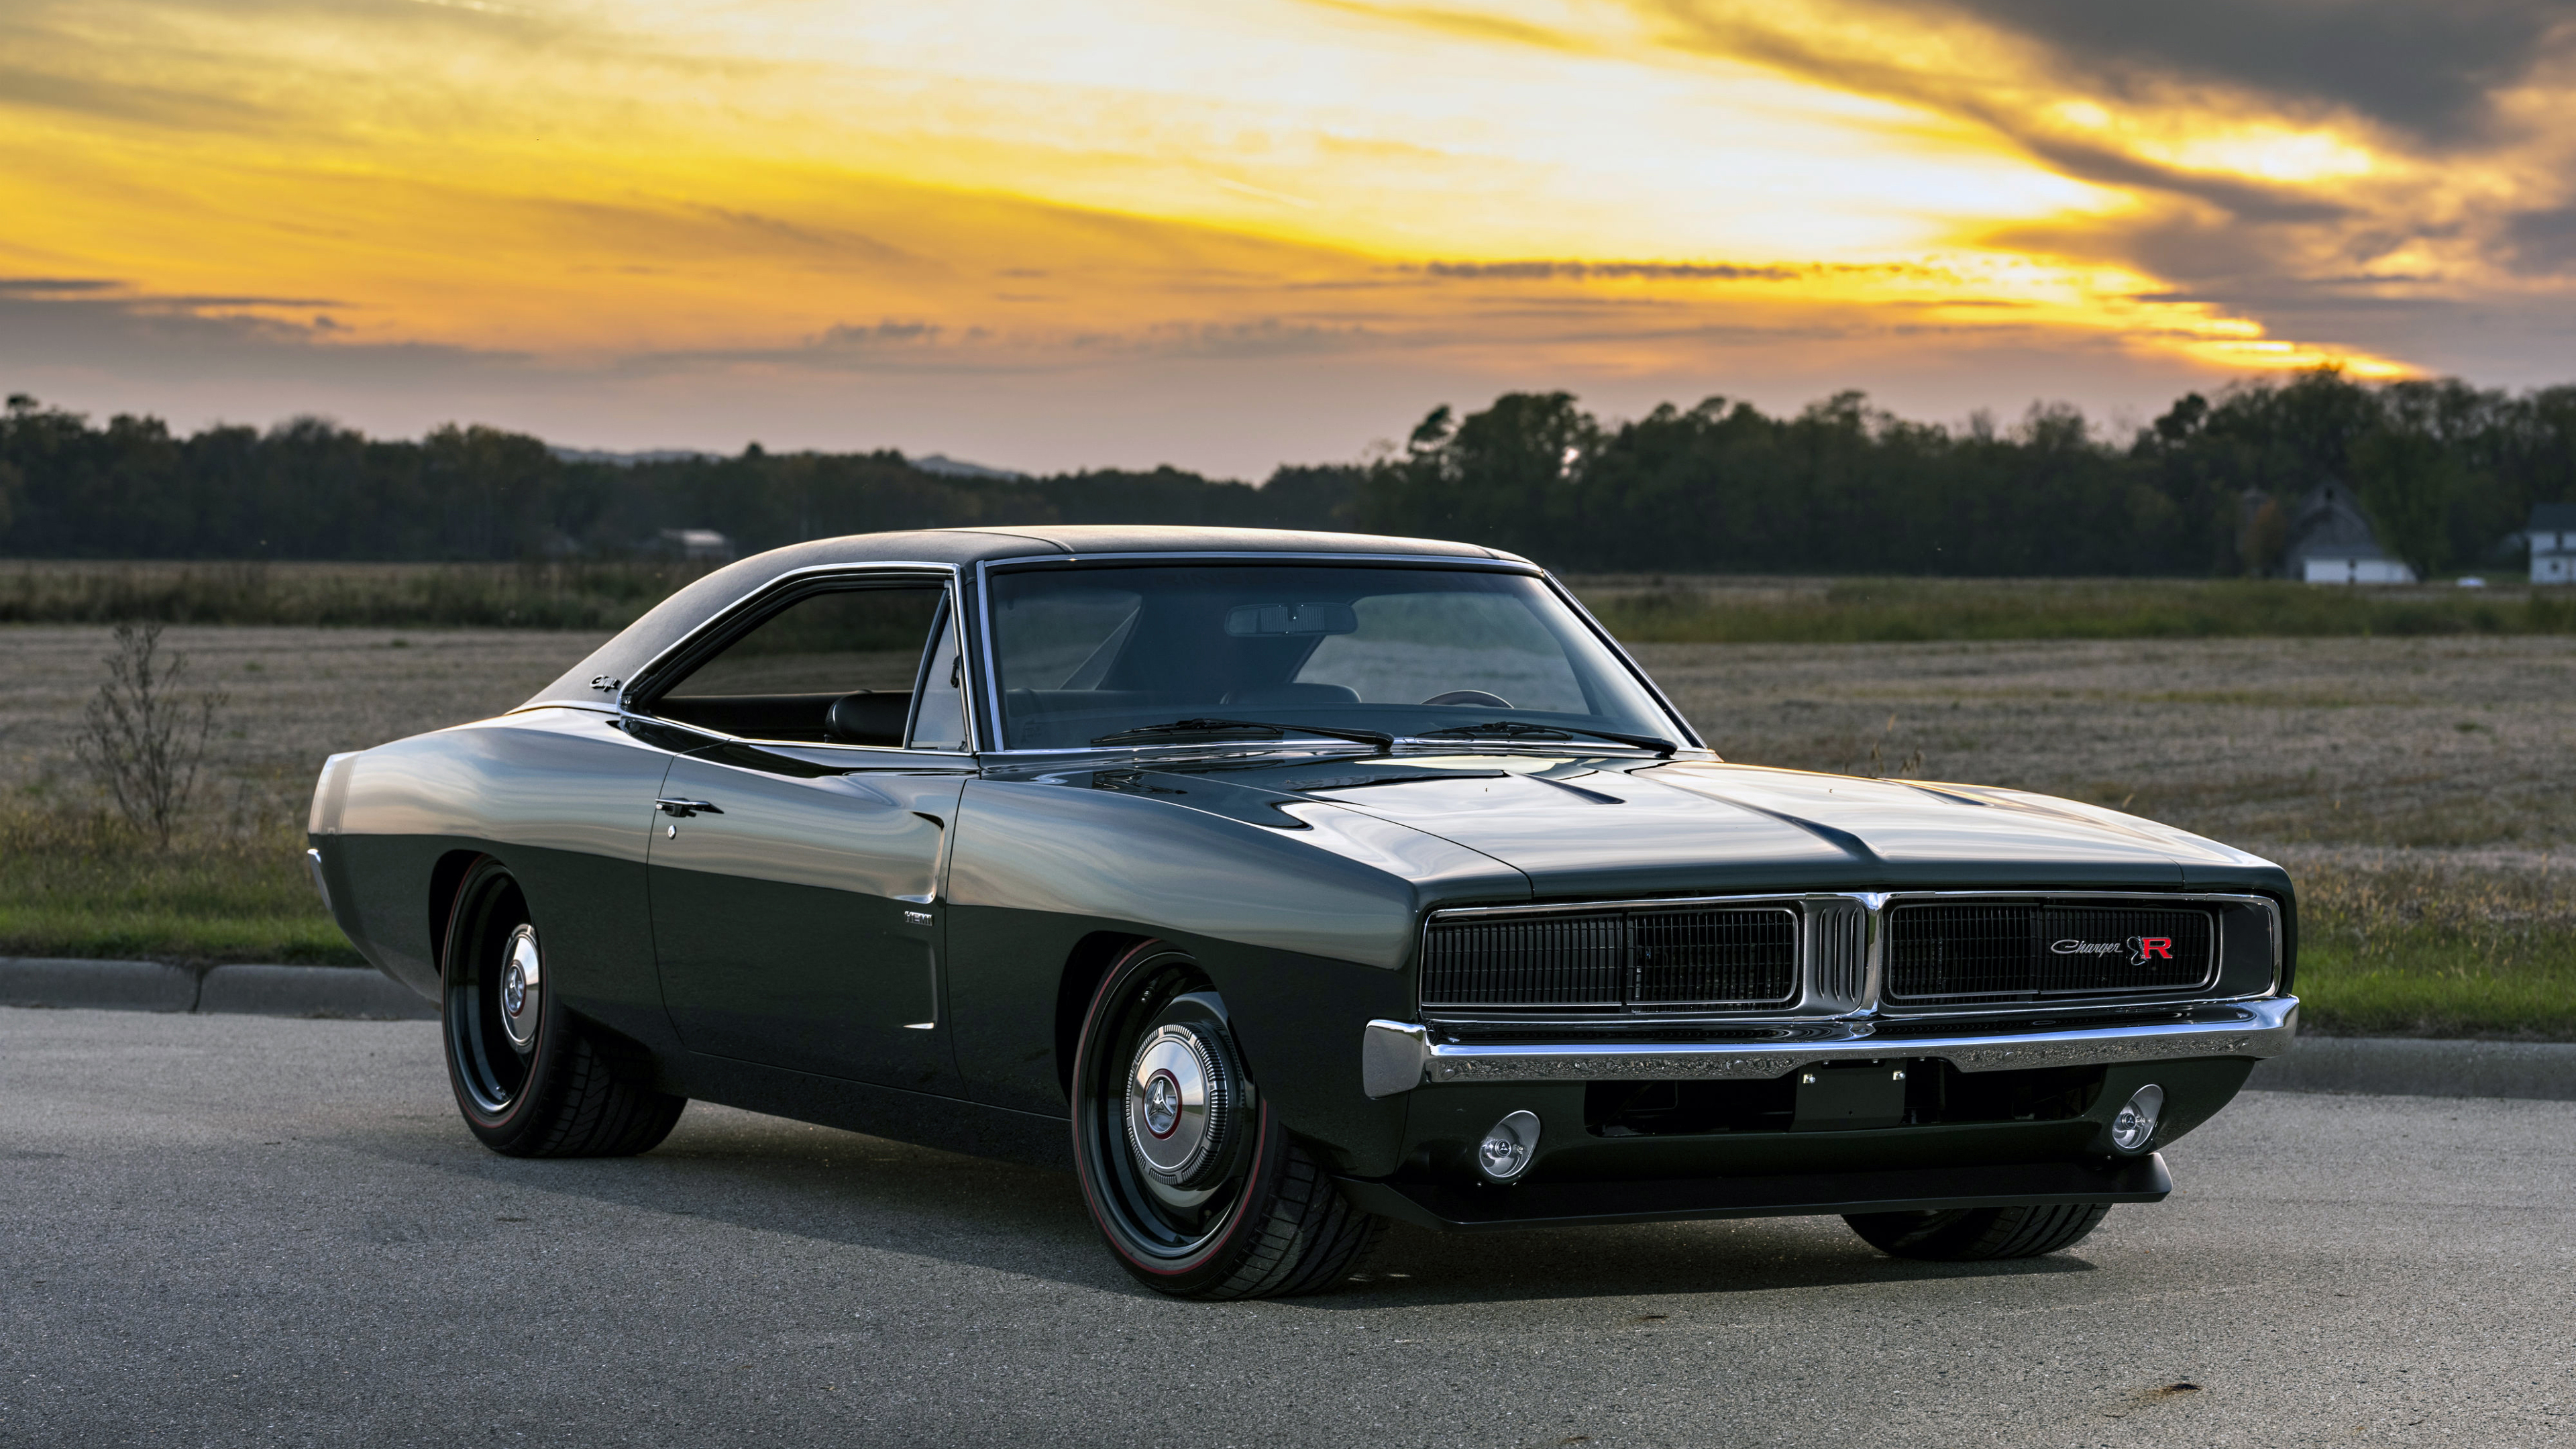 1969 ringbrothers dodge charger defector front view 1539109168 - 1969 Ringbrothers Dodge Charger Defector Front View - hd-wallpapers, dodge charger wallpapers, cars wallpapers, 4k-wallpapers